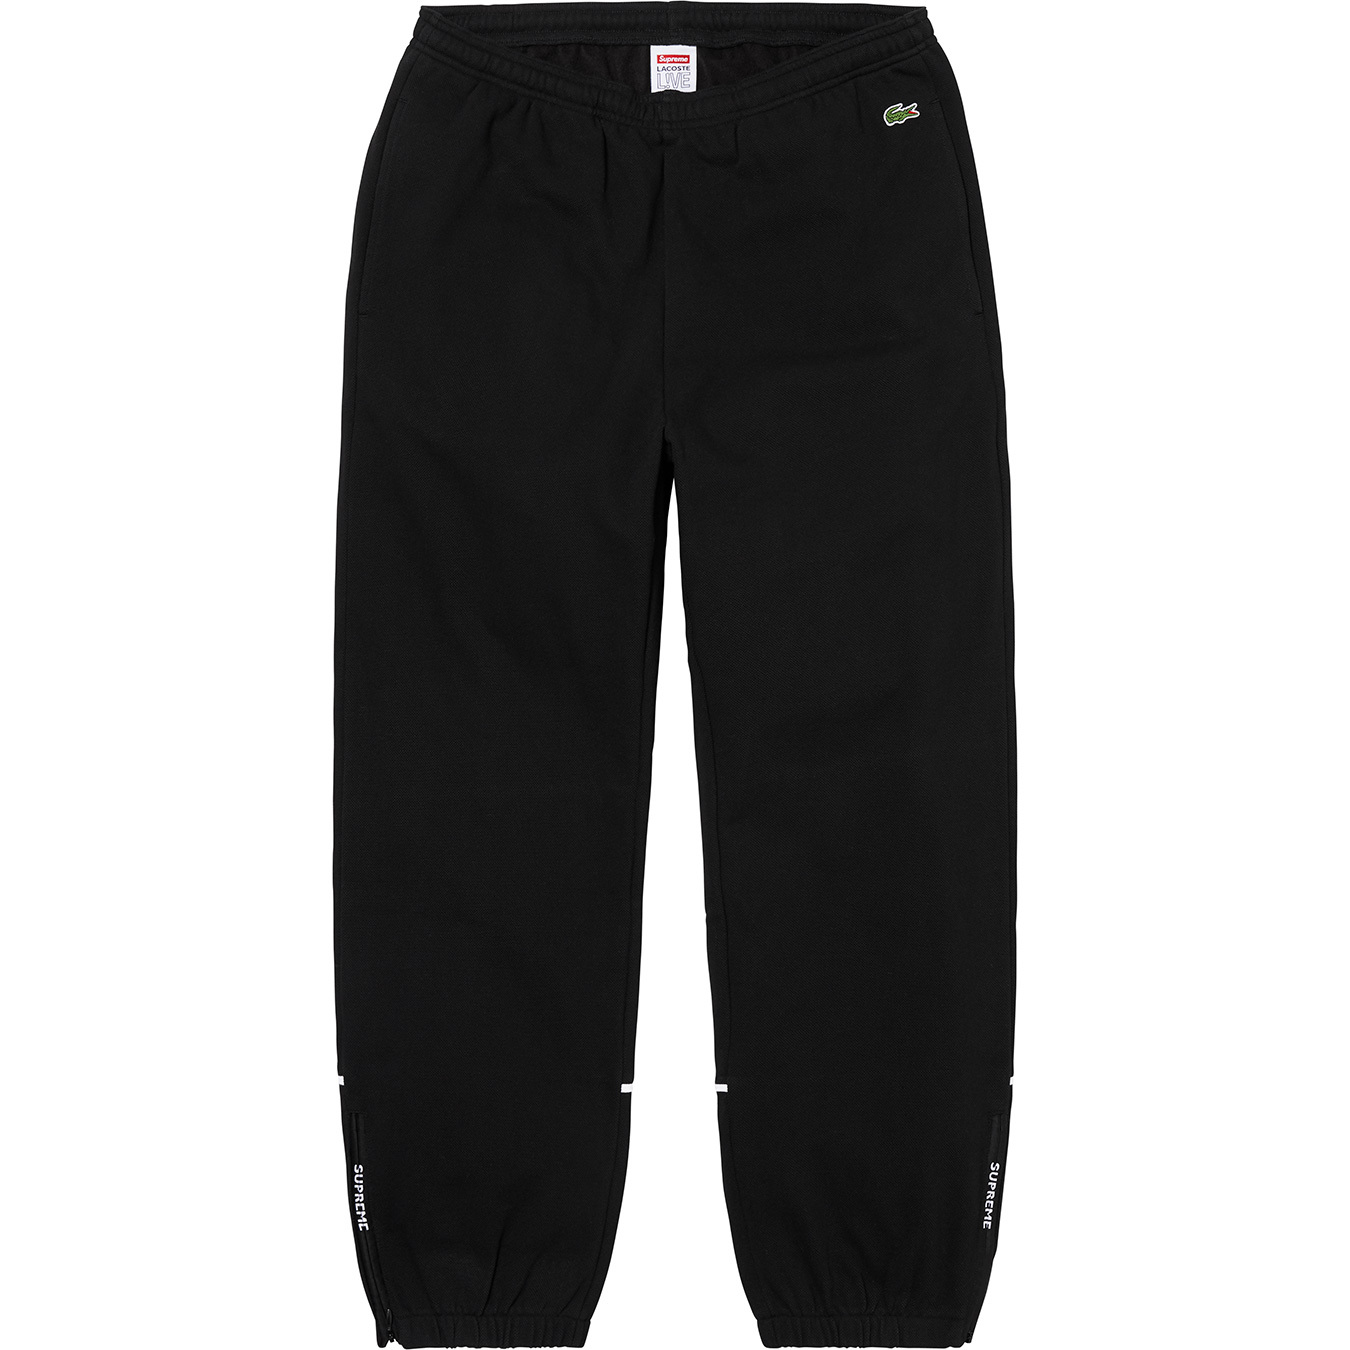 supreme-lacoste-19aw-19fw-collaboration-release-pique-pant